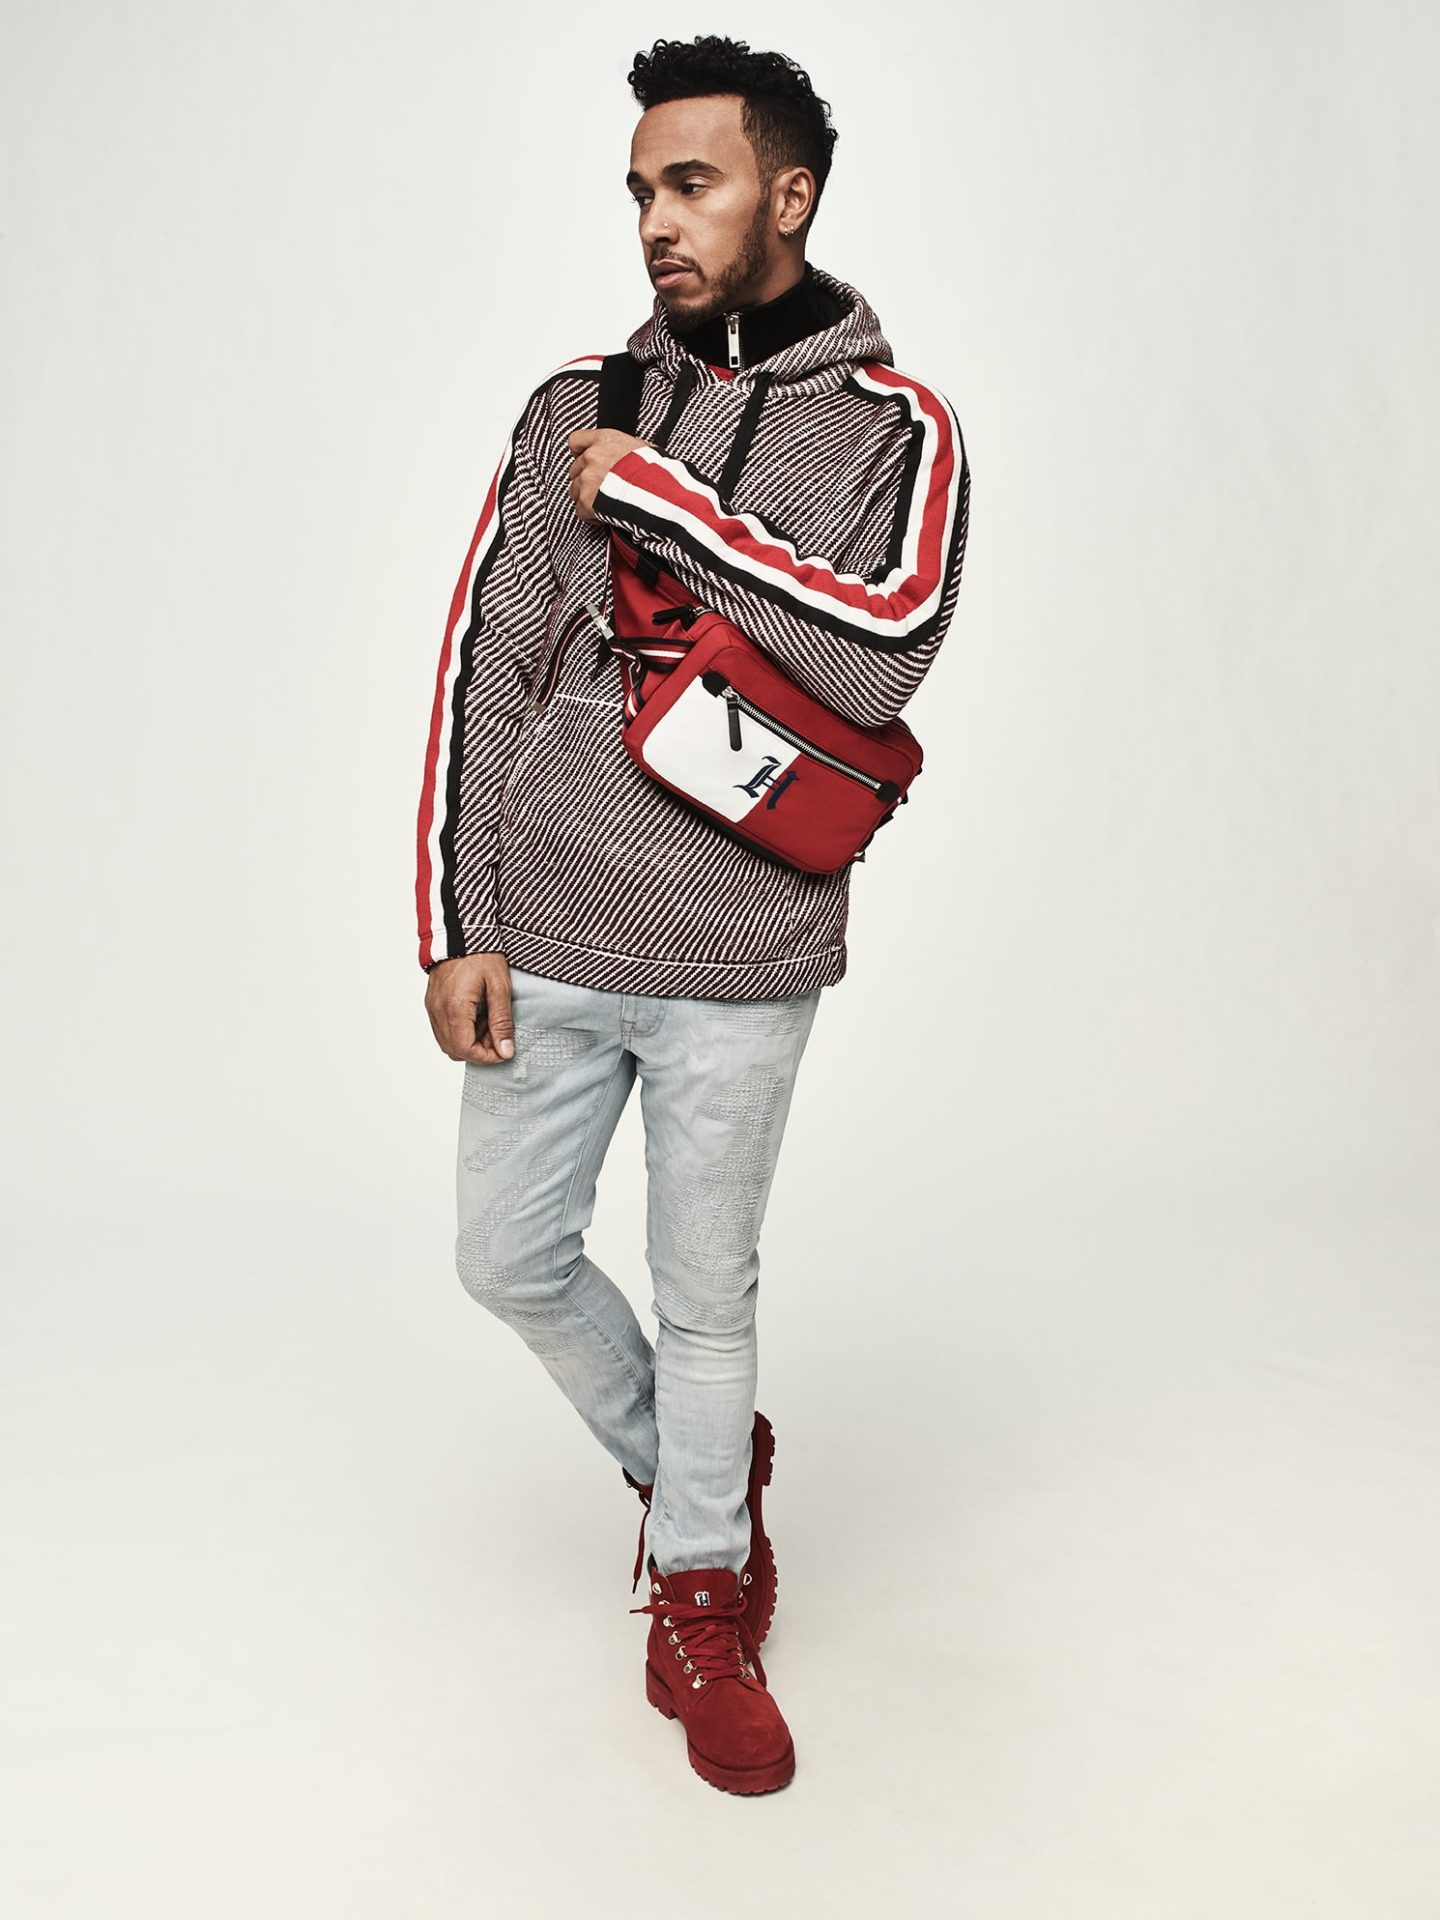 Tommy Hilfiger X Lewis Hamilton Lookbook